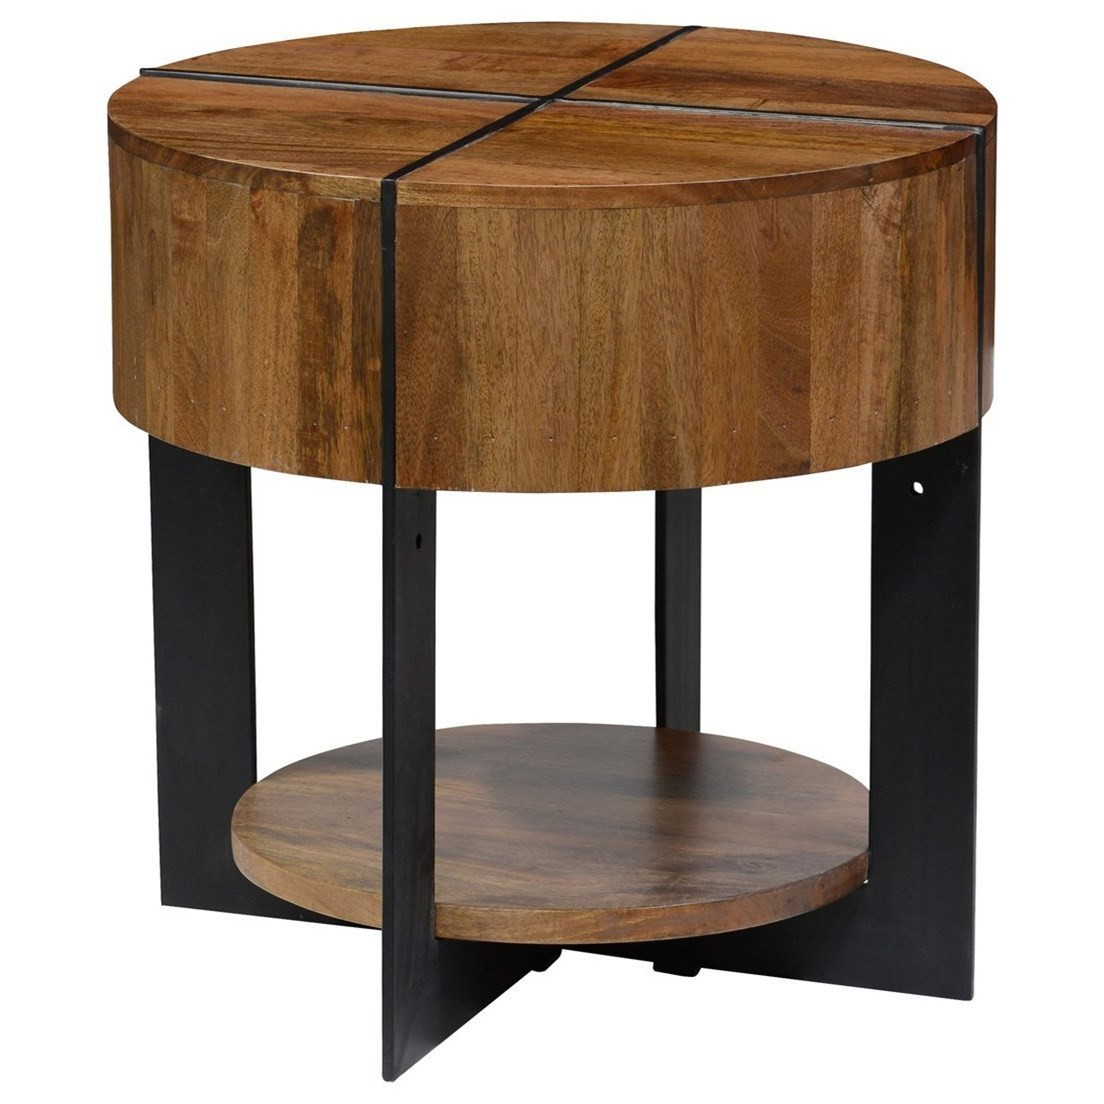 Classic Home Desmond Round Mango Wood End Table With Iron Base   John V  Schultz Furniture   End Tables